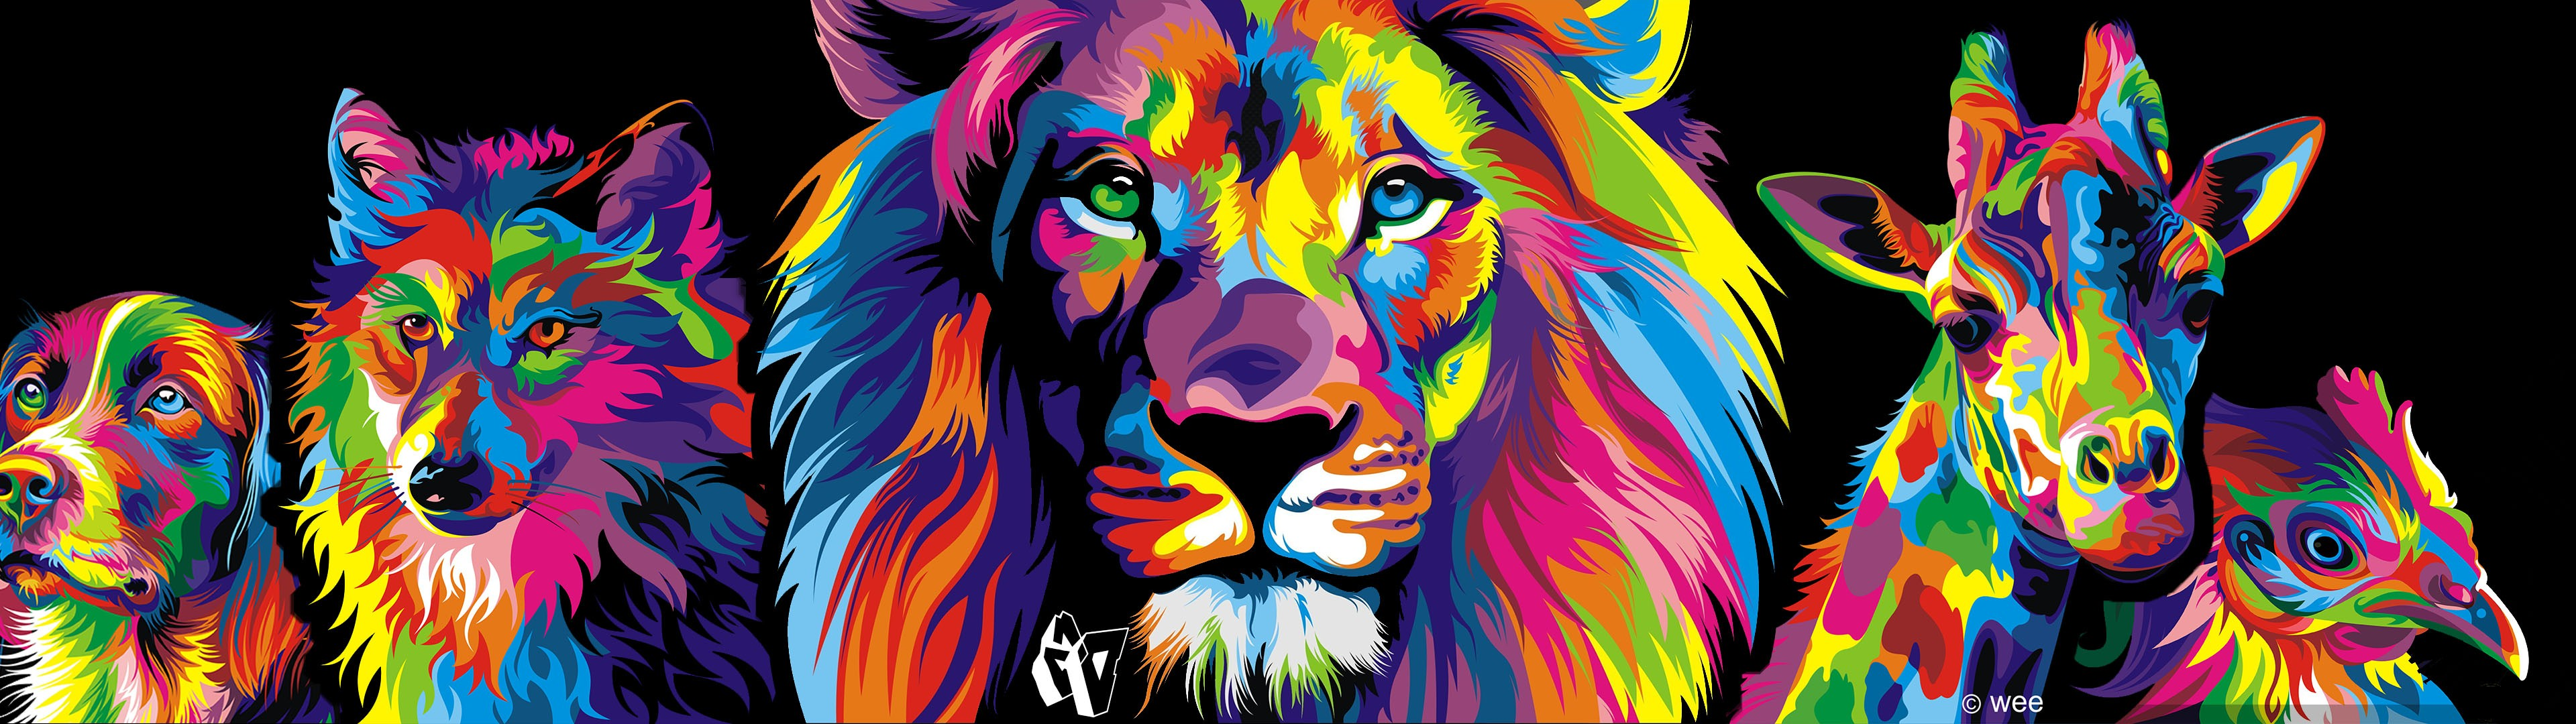 Colorful wallpapers for desktop